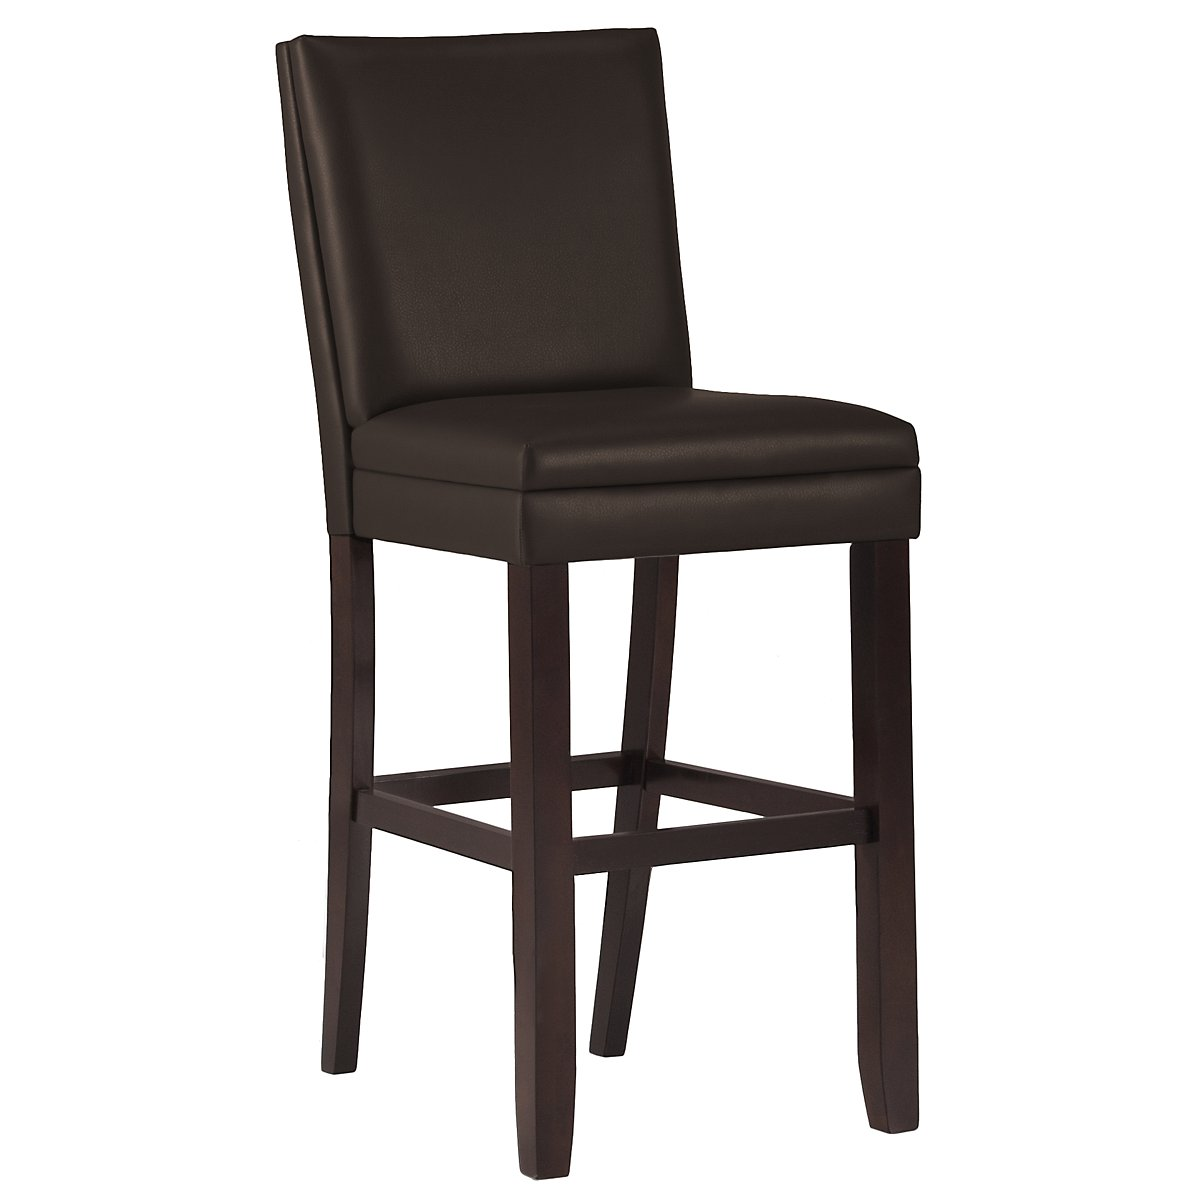 "Antonio Dk Brown 30"" Bonded Leather Barstool"